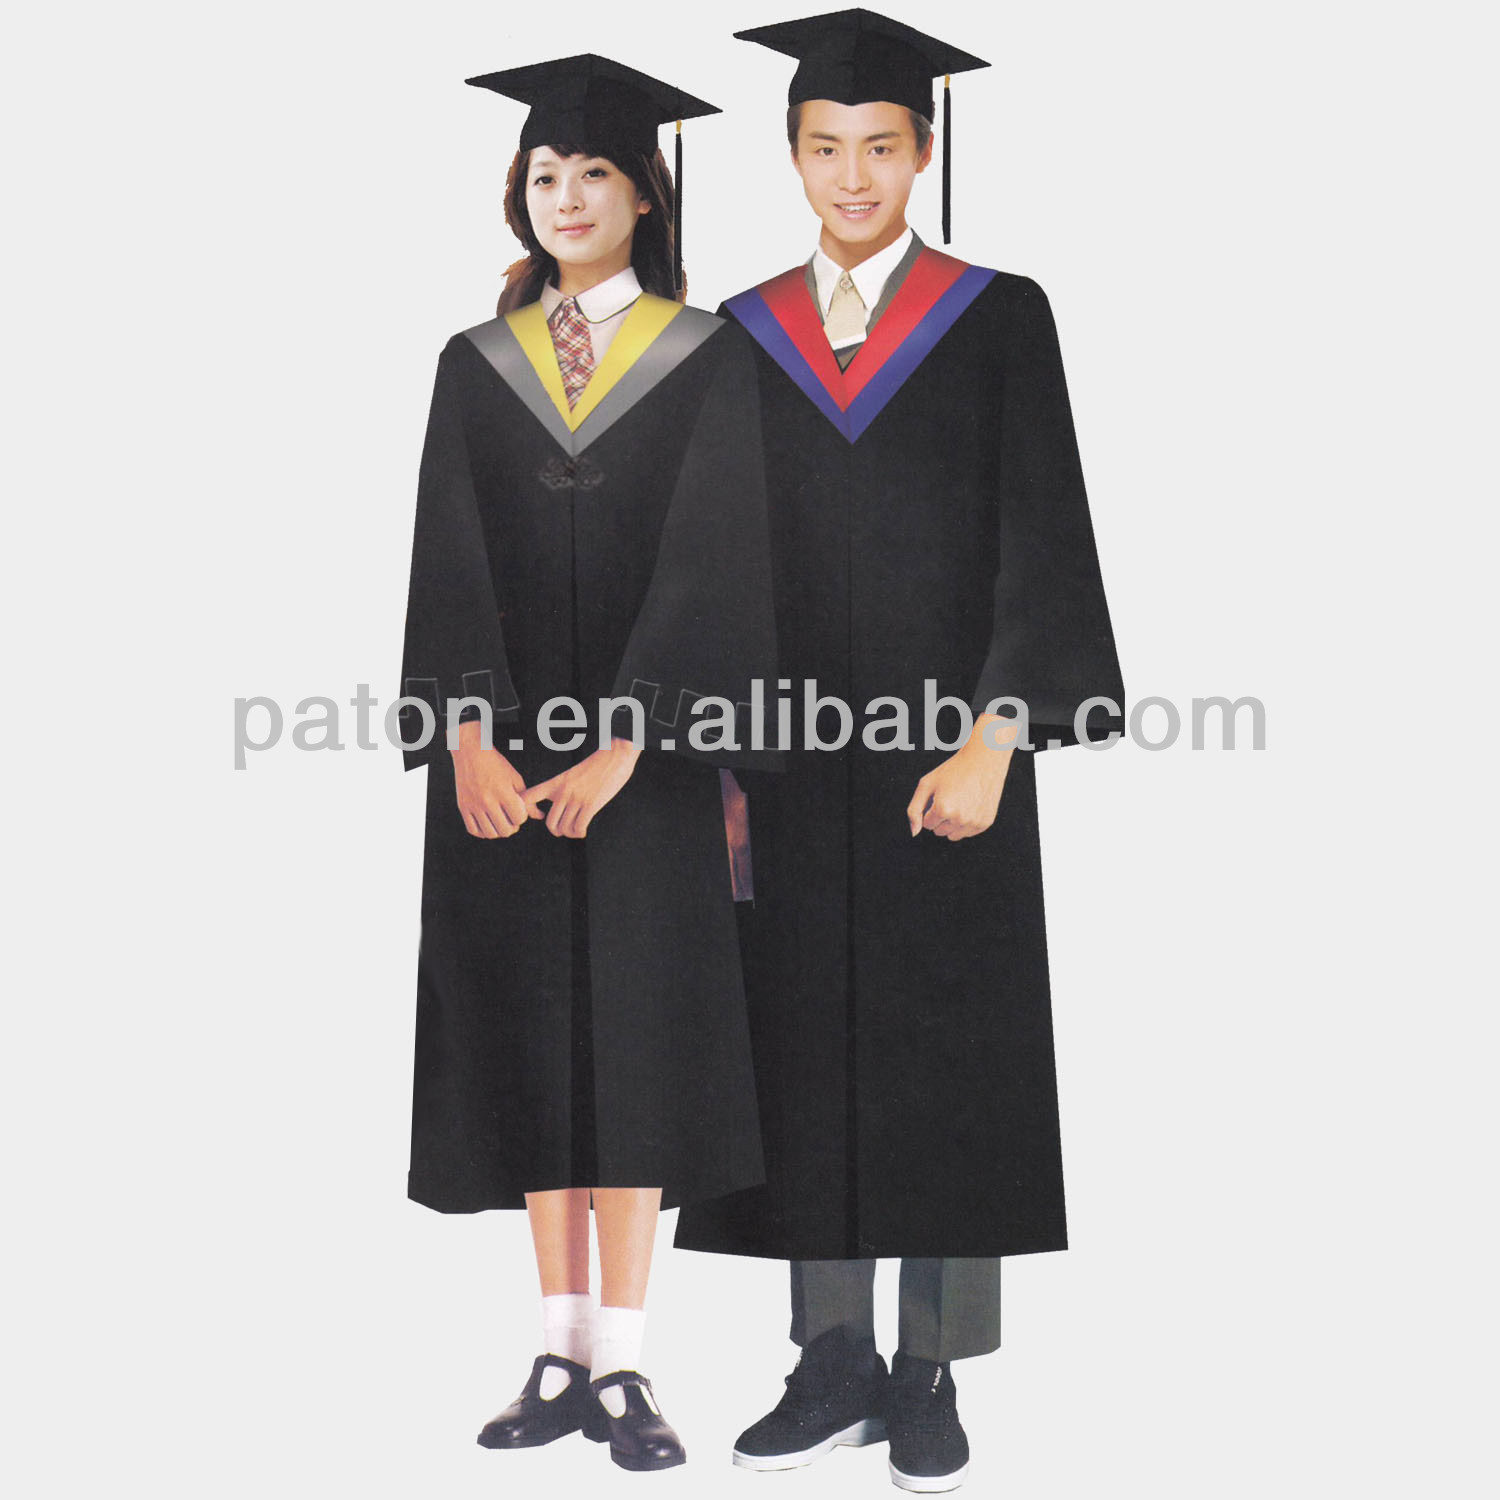 classic graduation gowns for university students